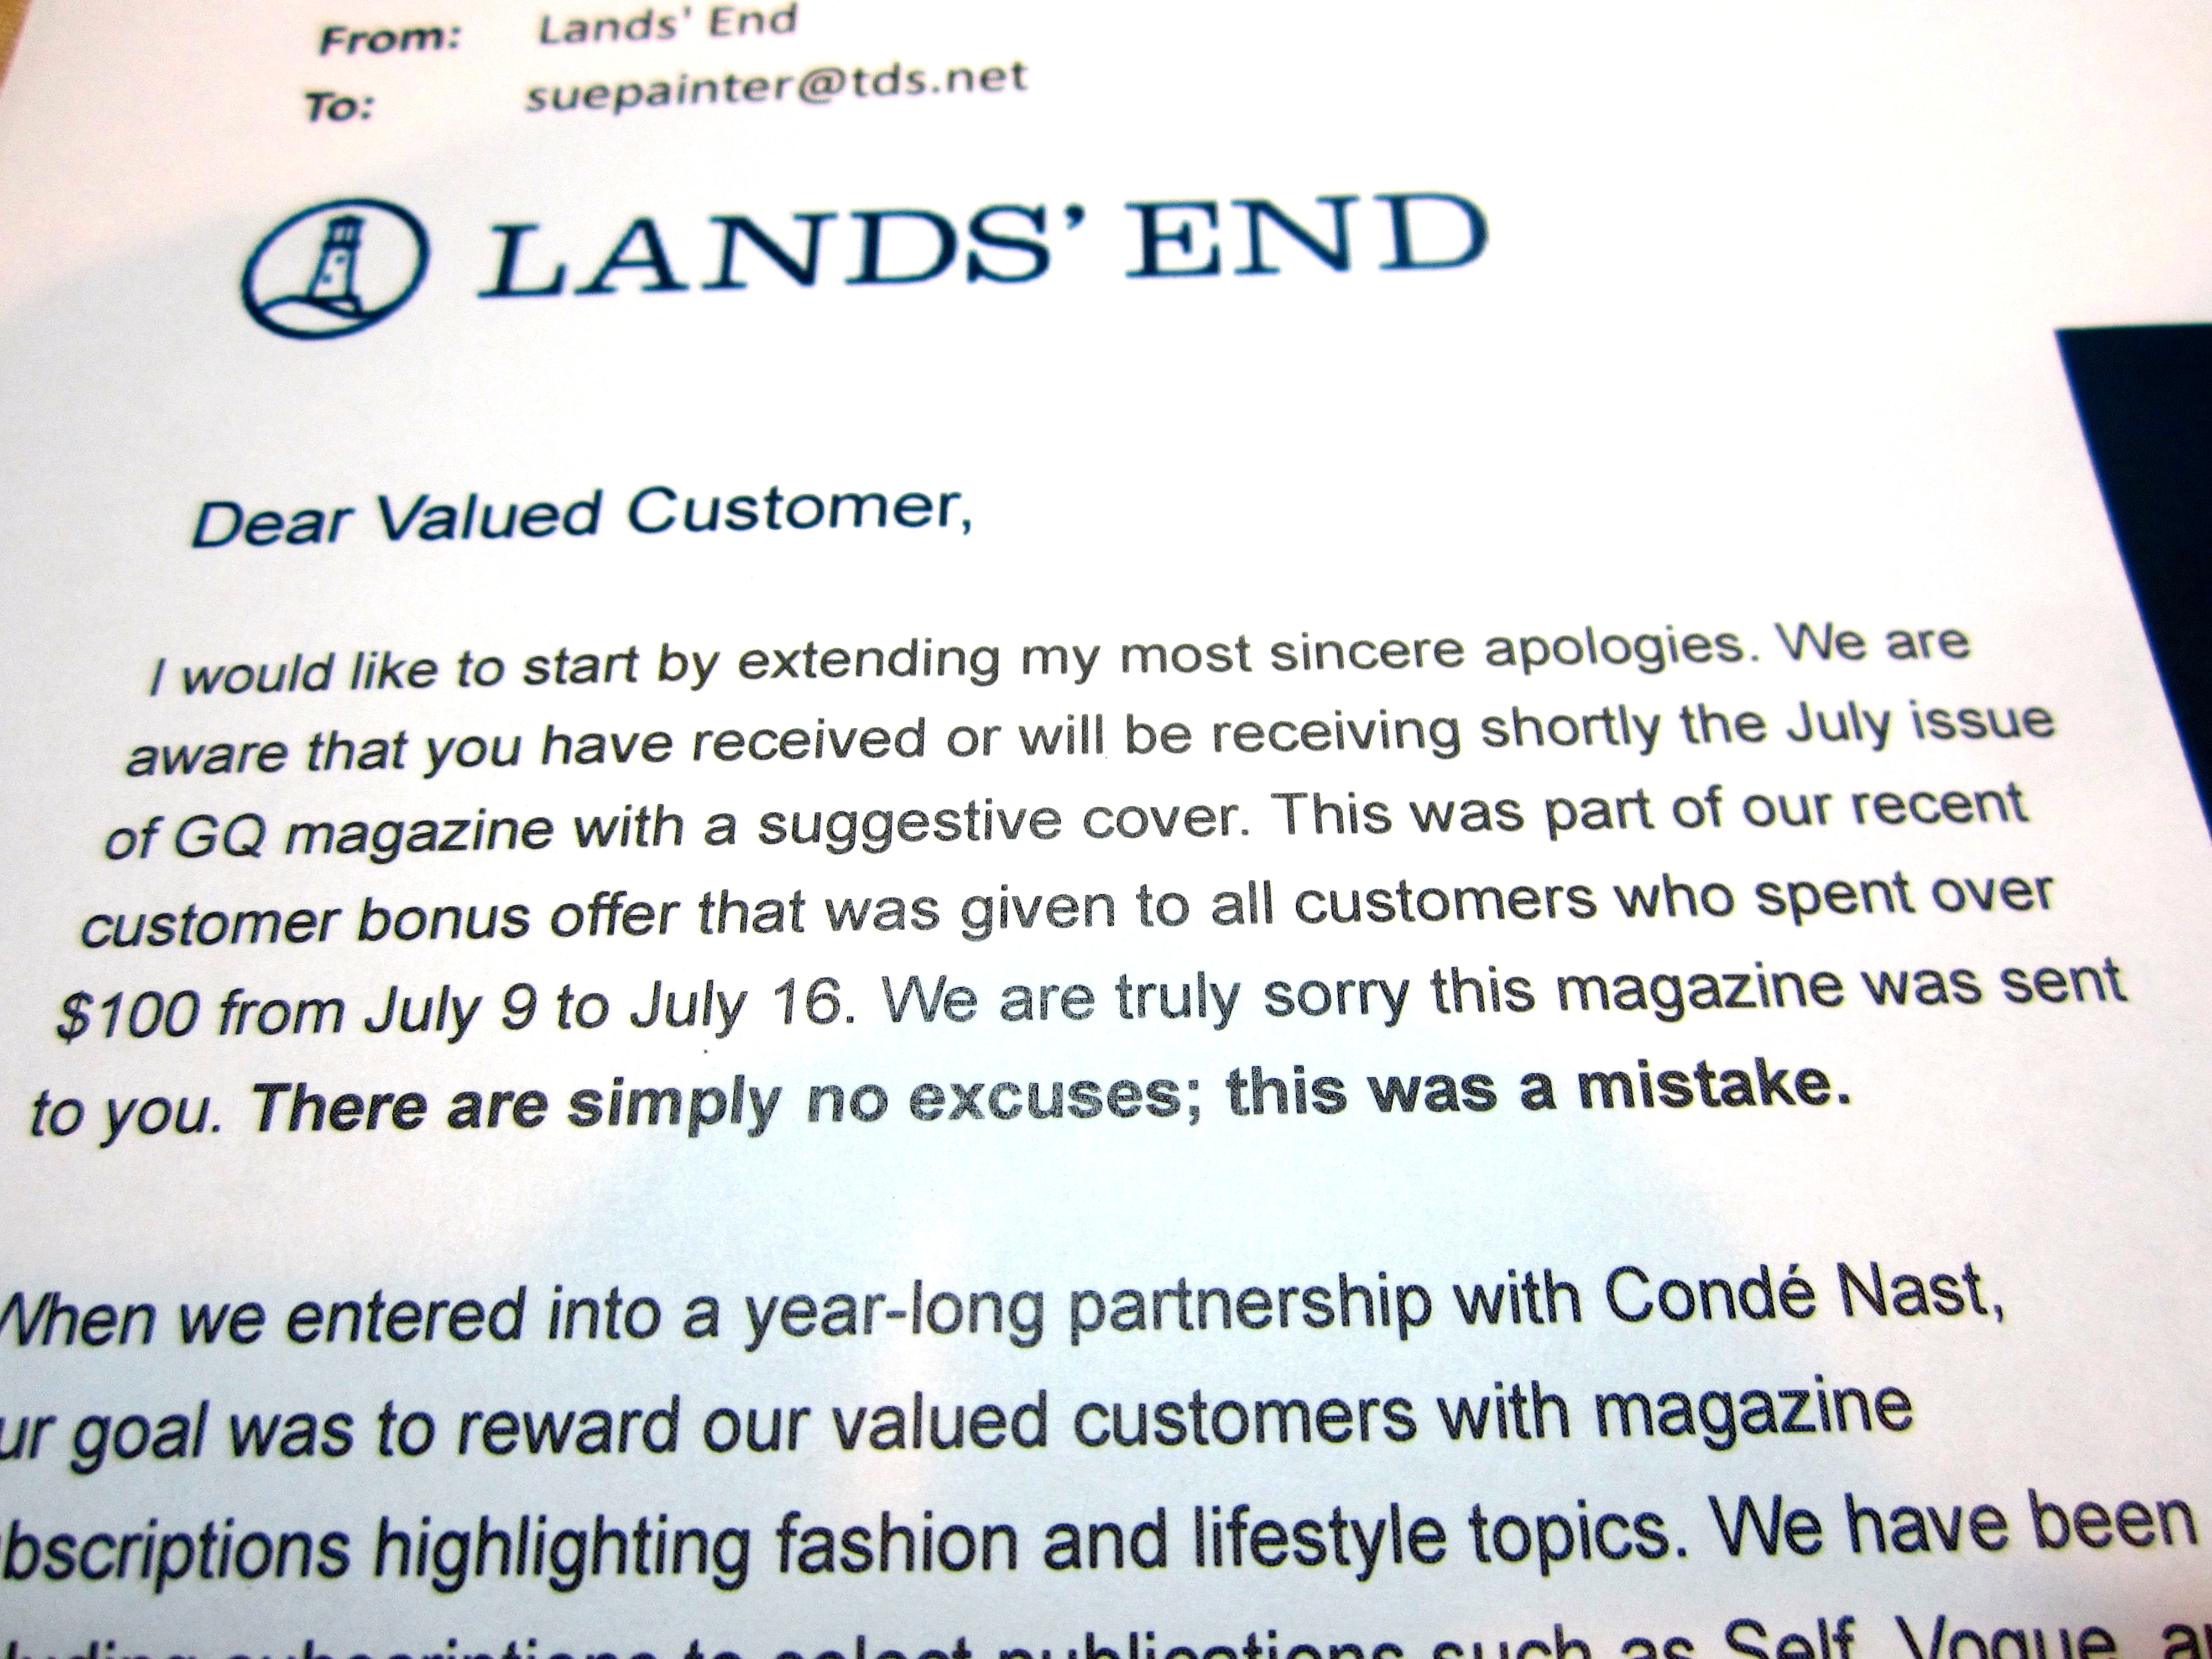 Instead Of Trying To Place The Blame Elsewhere (onto Conde Nast) The Pany Took The Blame Straight Up Andrmed Its Customers What It Was  Doing To Make